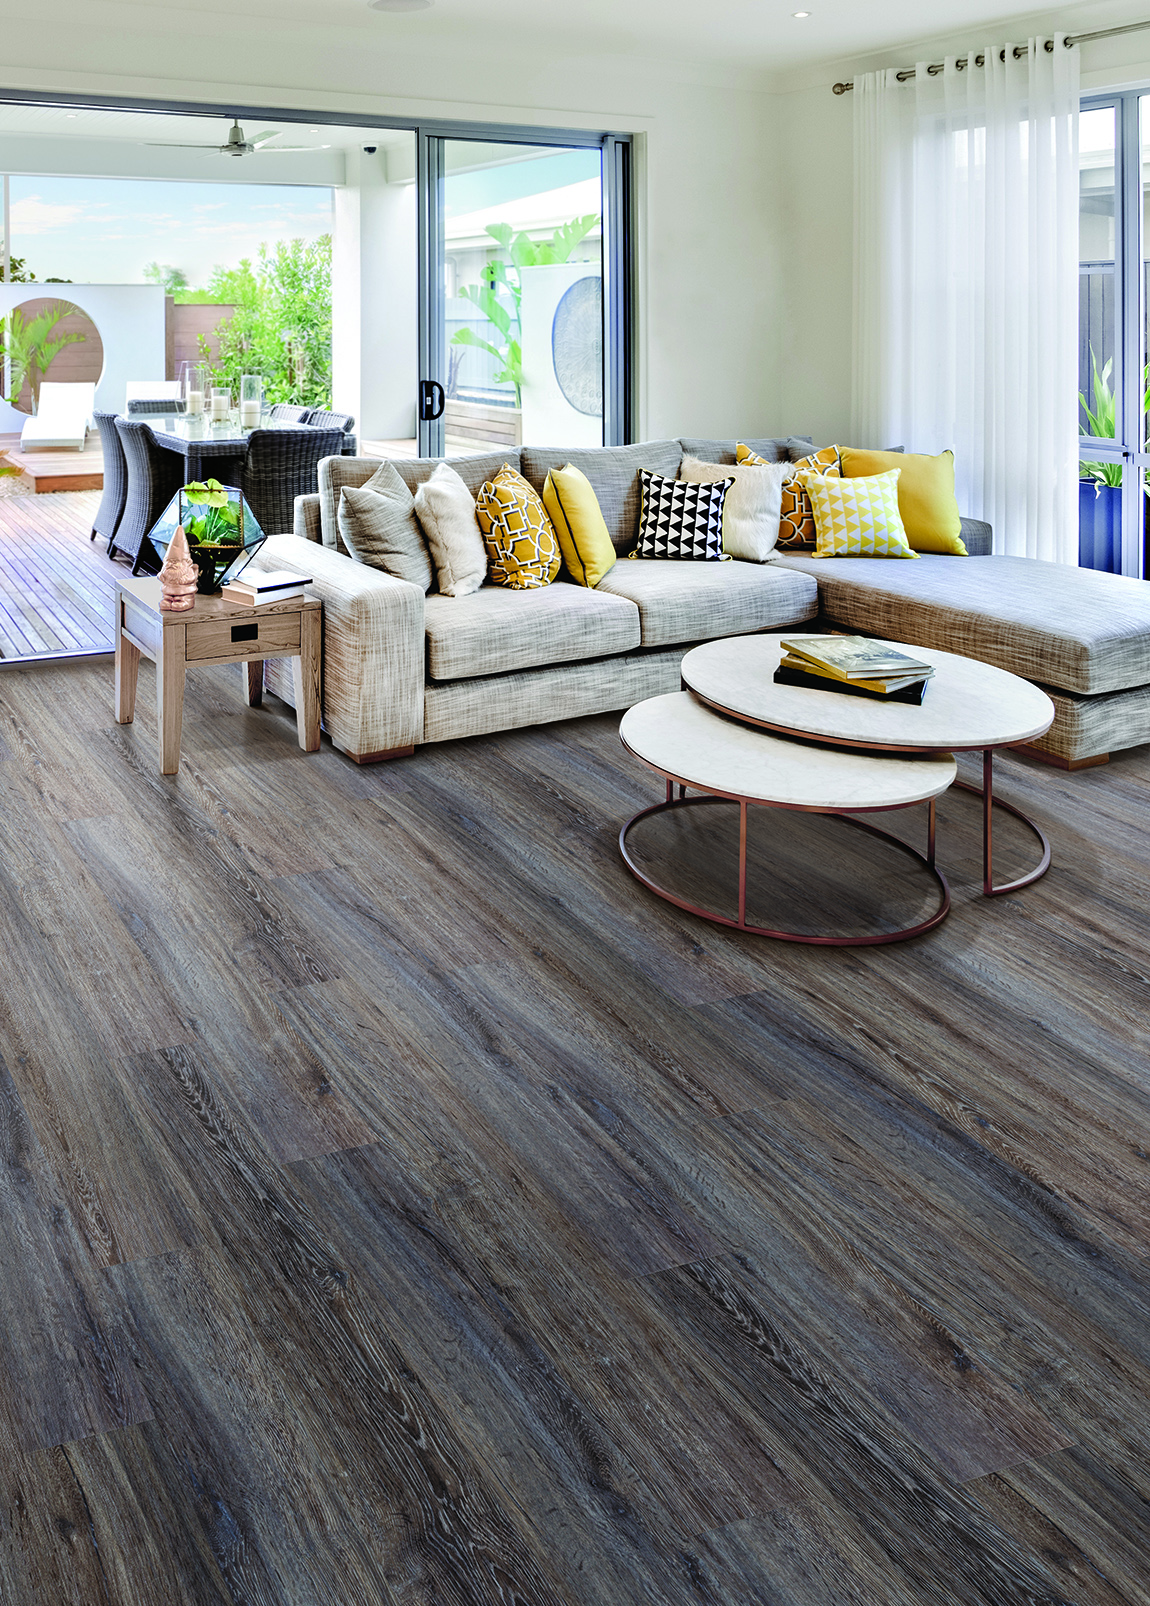 Flooring | Quality Flooring, Ideas, & Installation | Flooring America